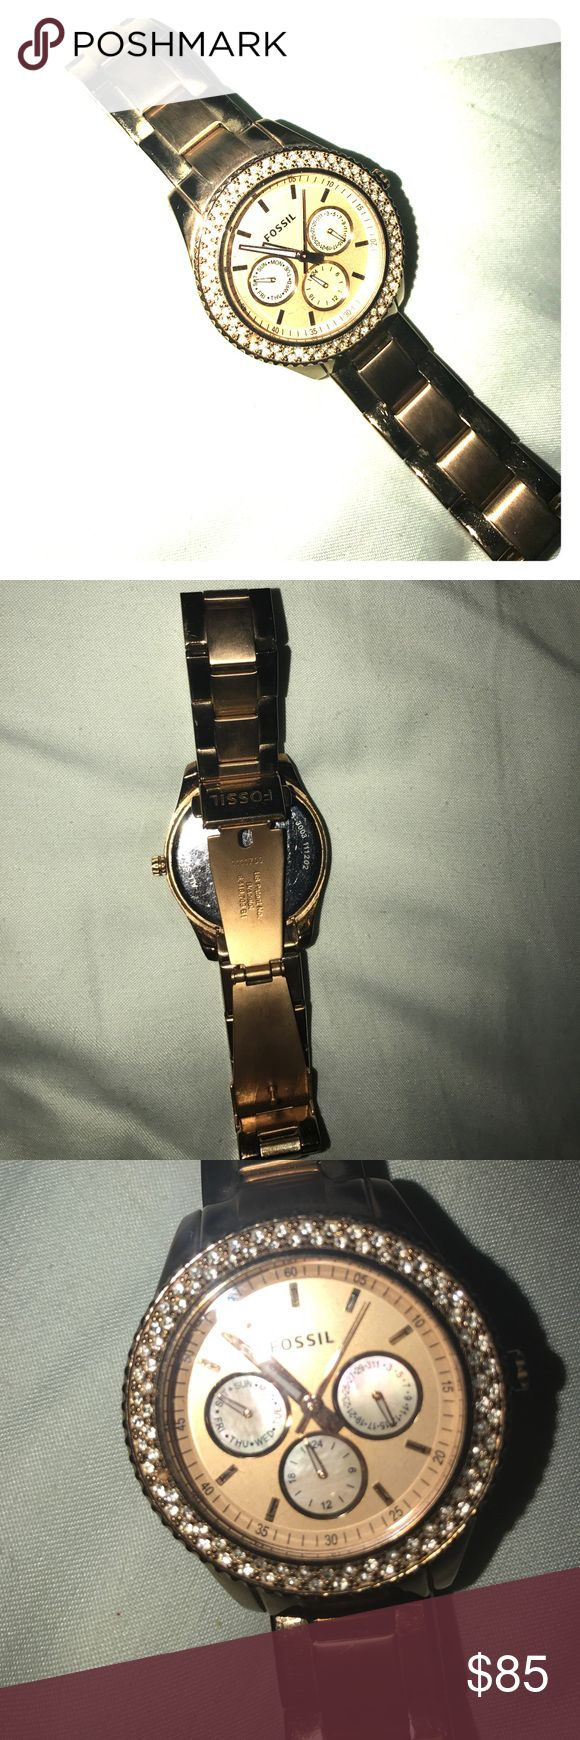 Rose Gold Fossil watch Gorgeous rose gold watch with rhinestones around the face! Comes in original fossil tin box which is also very cute! In great condition, just needs a battery 😊 there is one rhinestone missing, hard to tell at all! Fossil Accessories Watches